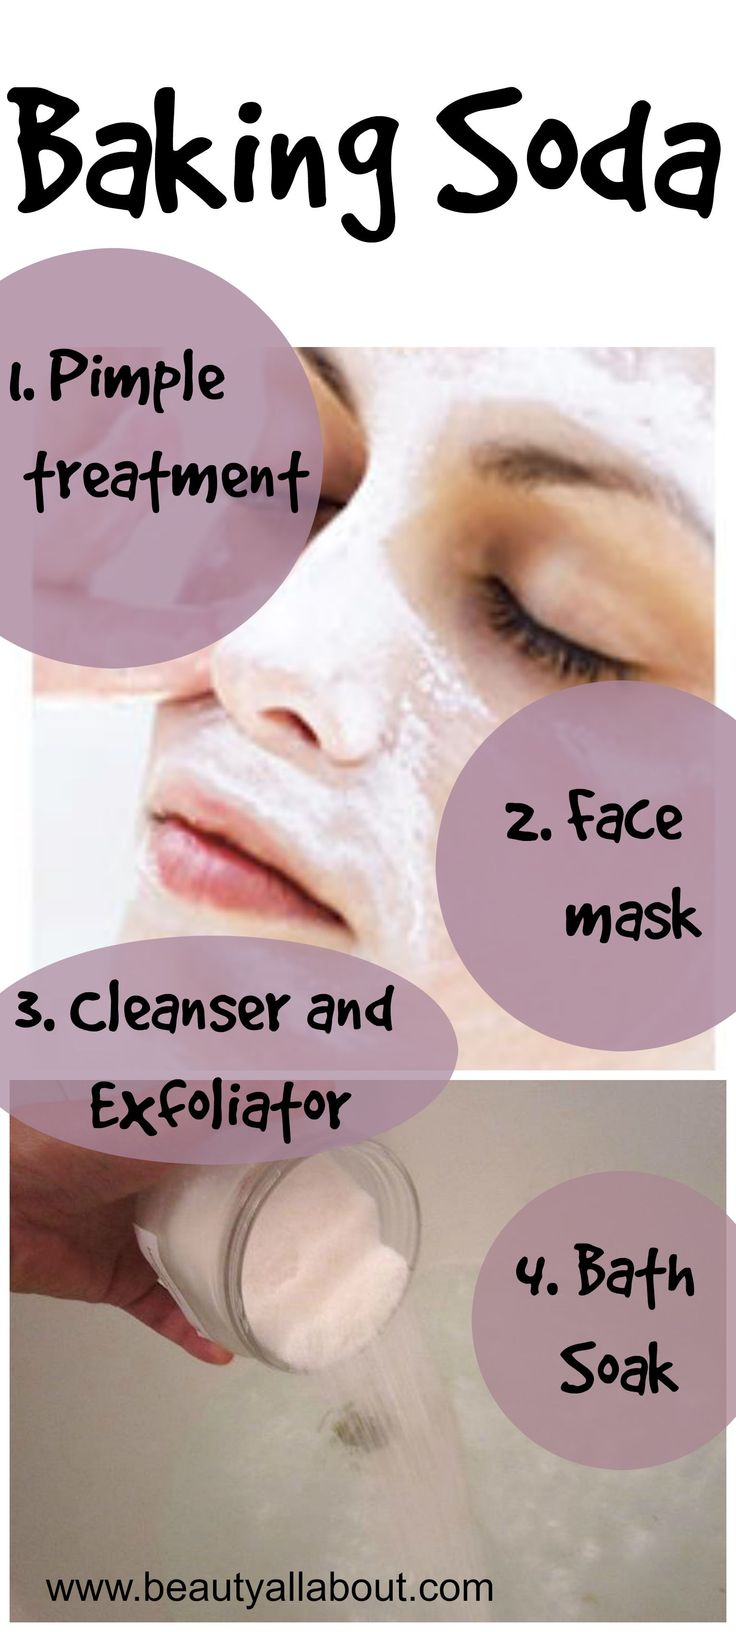 Baking Soda as a Pimple treatment, Face Mask, Exfoliator and Bath Soak | All About Beauty